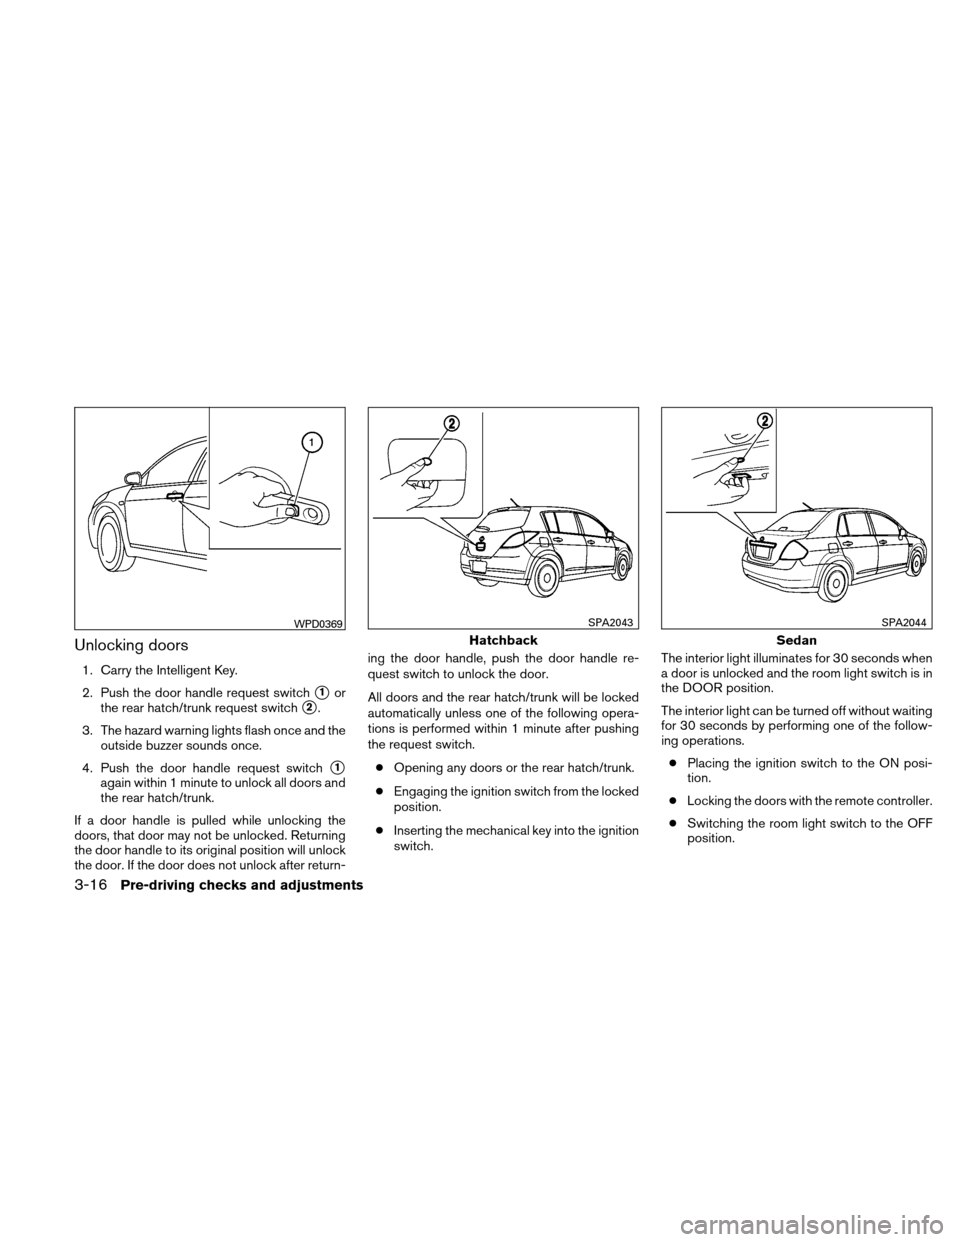 NISSAN VERSA HATCHBACK 2011 1.G Owners Manual, Page 131